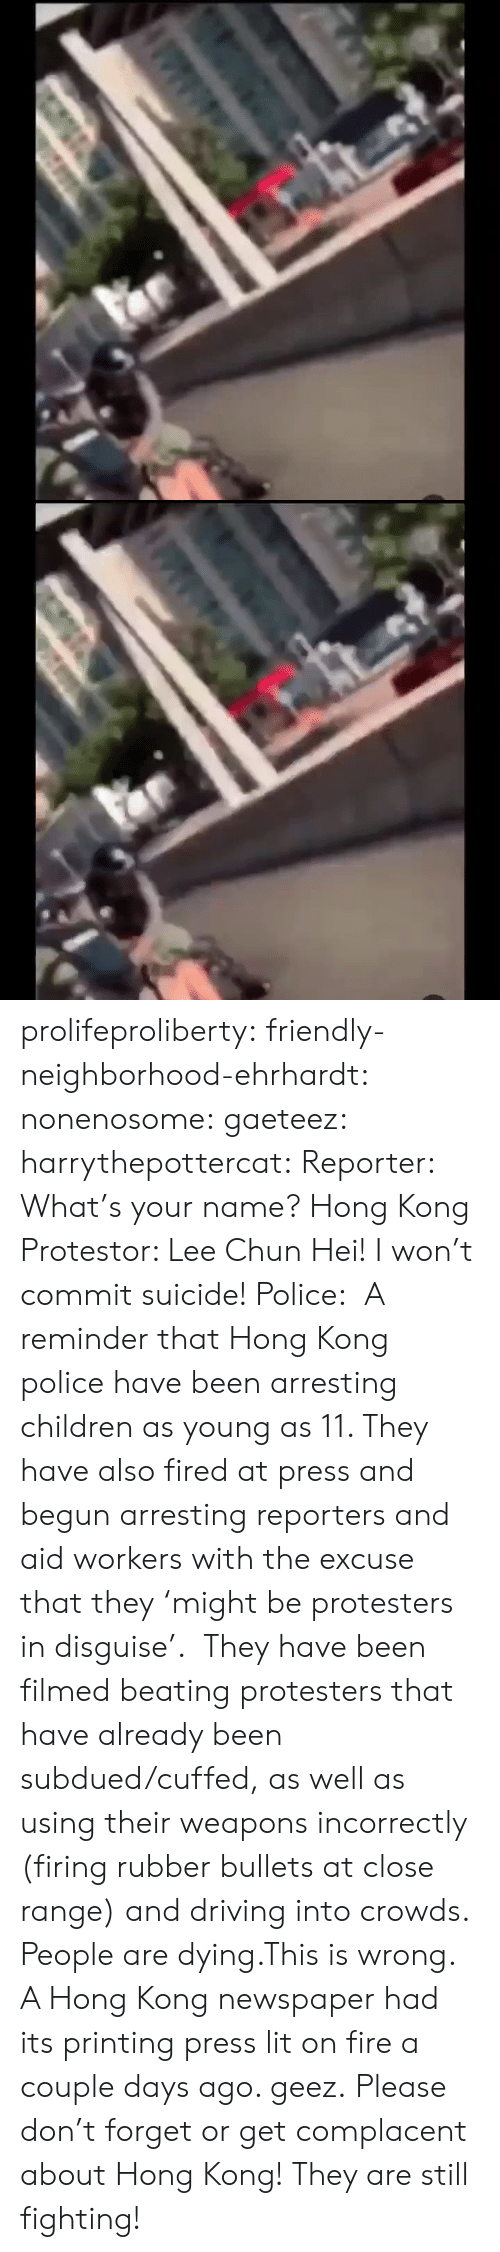 fired: के.  ॥ल prolifeproliberty:  friendly-neighborhood-ehrhardt:  nonenosome:  gaeteez:   harrythepottercat:  Reporter: What's your name? Hong Kong Protestor: Lee Chun Hei! I won't commit suicide! Police:    A reminder that Hong Kong police have been arresting children as young as 11. They have also fired at press and begun arresting reporters and aid workers with the excuse that they 'might be protesters in disguise'.  They have been filmed beating protesters that have already been subdued/cuffed, as well as using their weapons incorrectly (firing rubber bullets at close range) and driving into crowds.  People are dying.This is wrong.    A Hong Kong newspaper had its printing press lit on fire a couple days ago.   geez.   Please don't forget or get complacent about Hong Kong! They are still fighting!